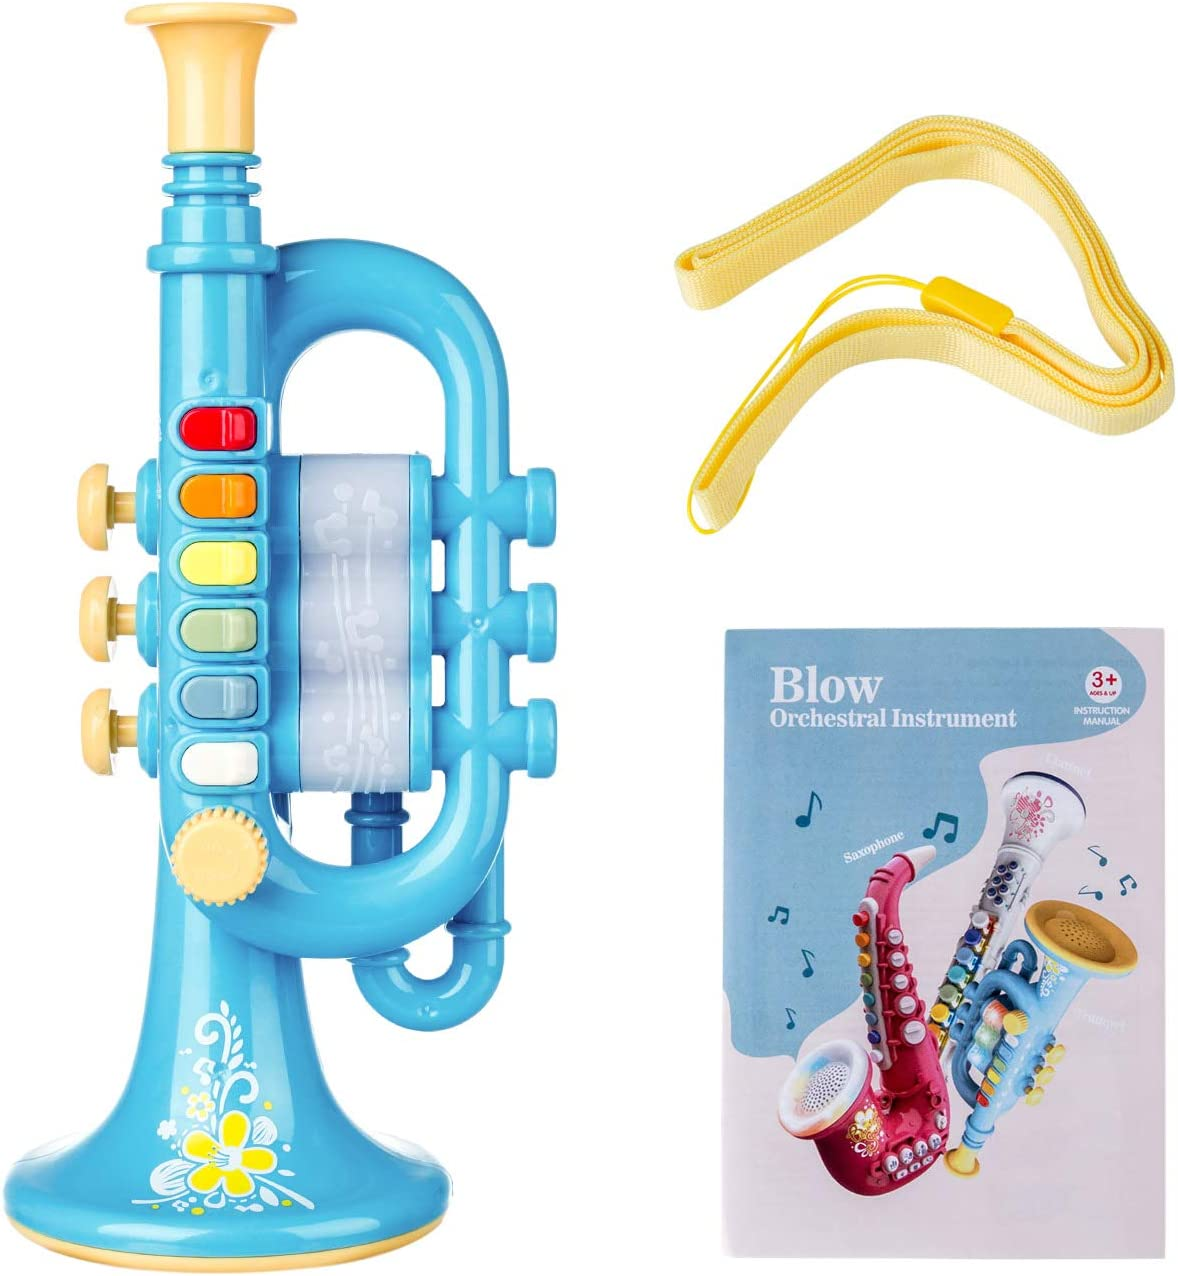 Blue XSHION Toy Trumpet Horn for Kids Mini Trumpet Instrument Musical Instrument Toy for Toddler Girls Boys